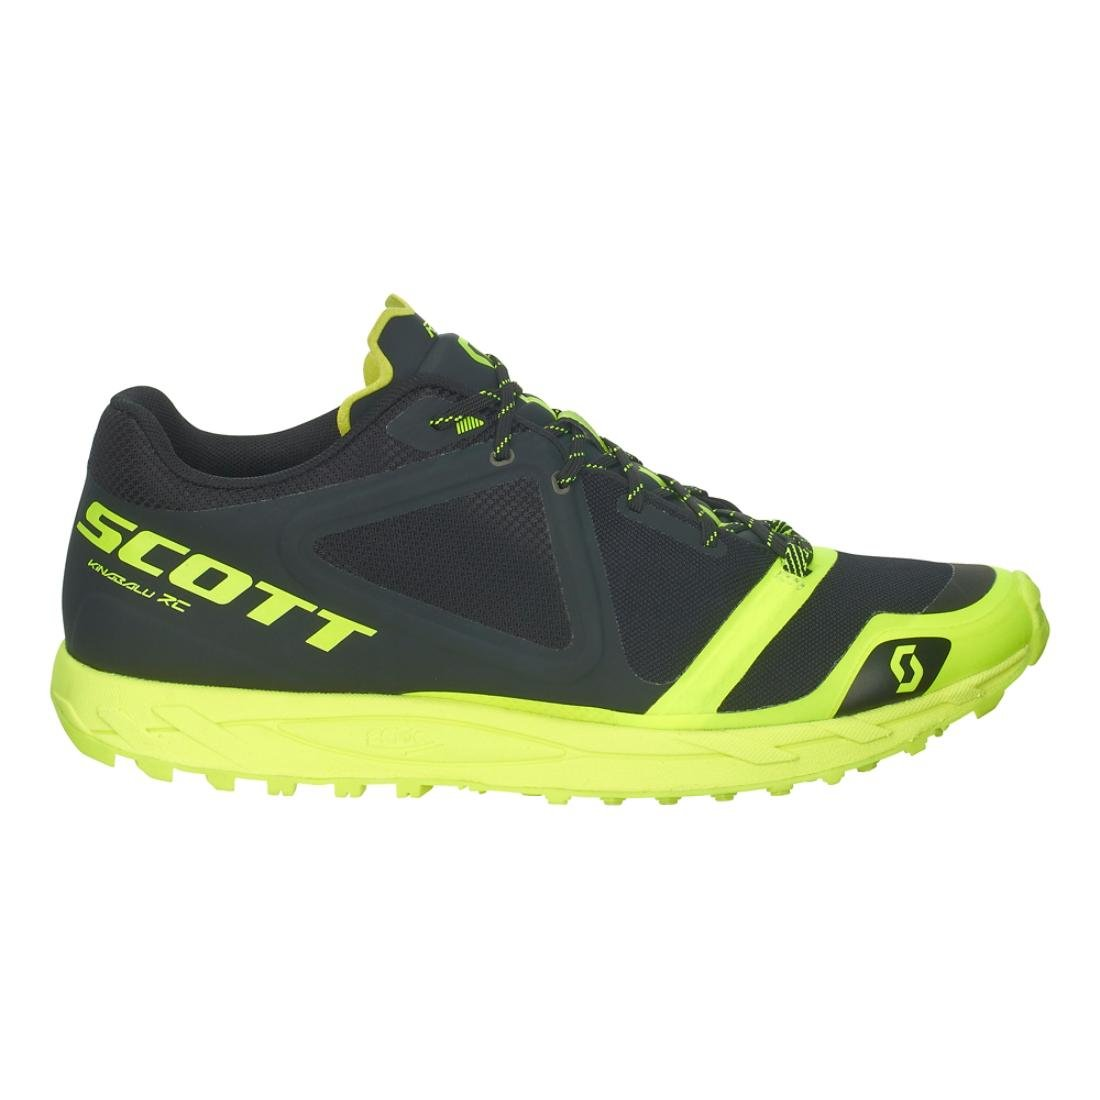 SCOTT Kinabalu RC Trail Running Shoe - Men's sct0034-Black/Yellow-Medium-12 B071NFPH18